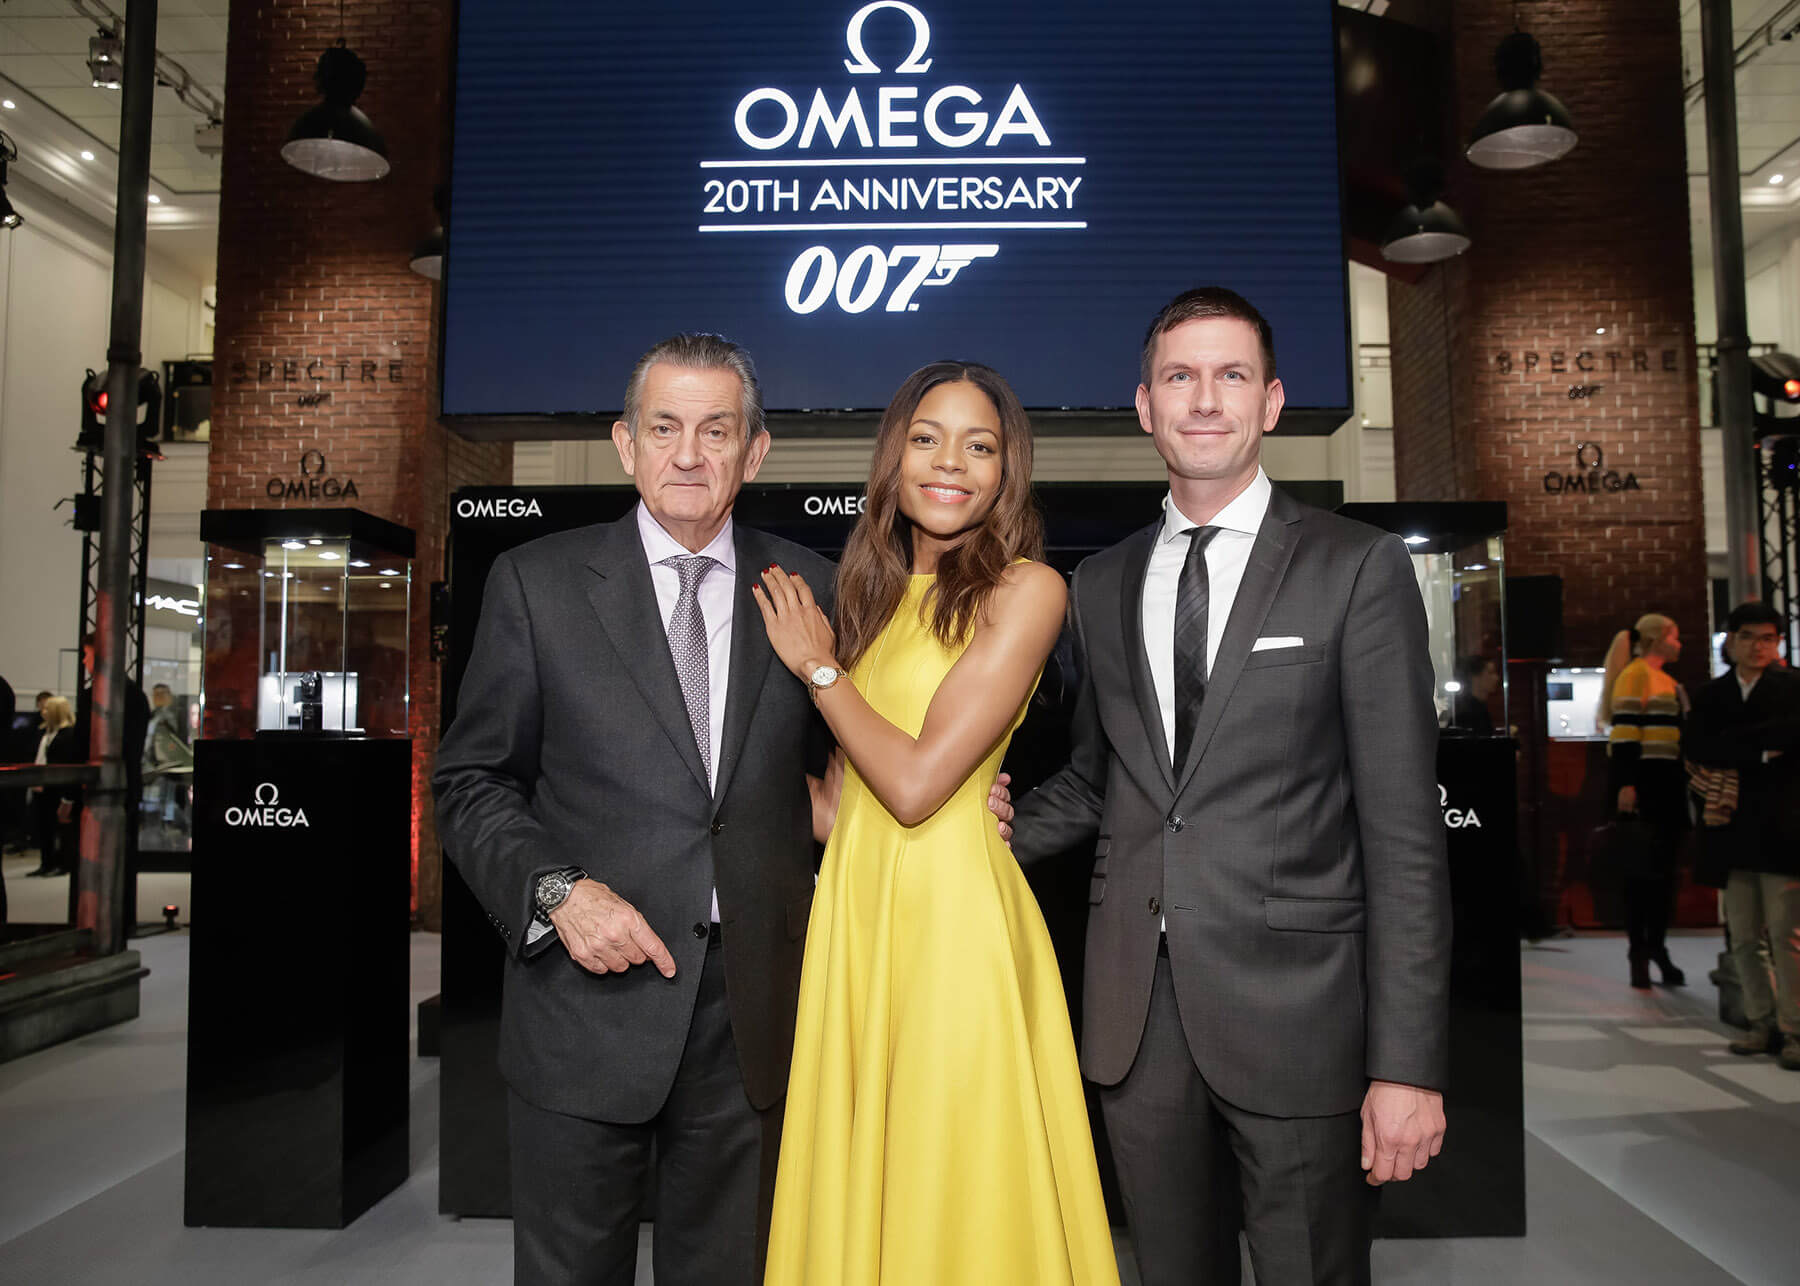 OMEGA James Bond SPECTRE